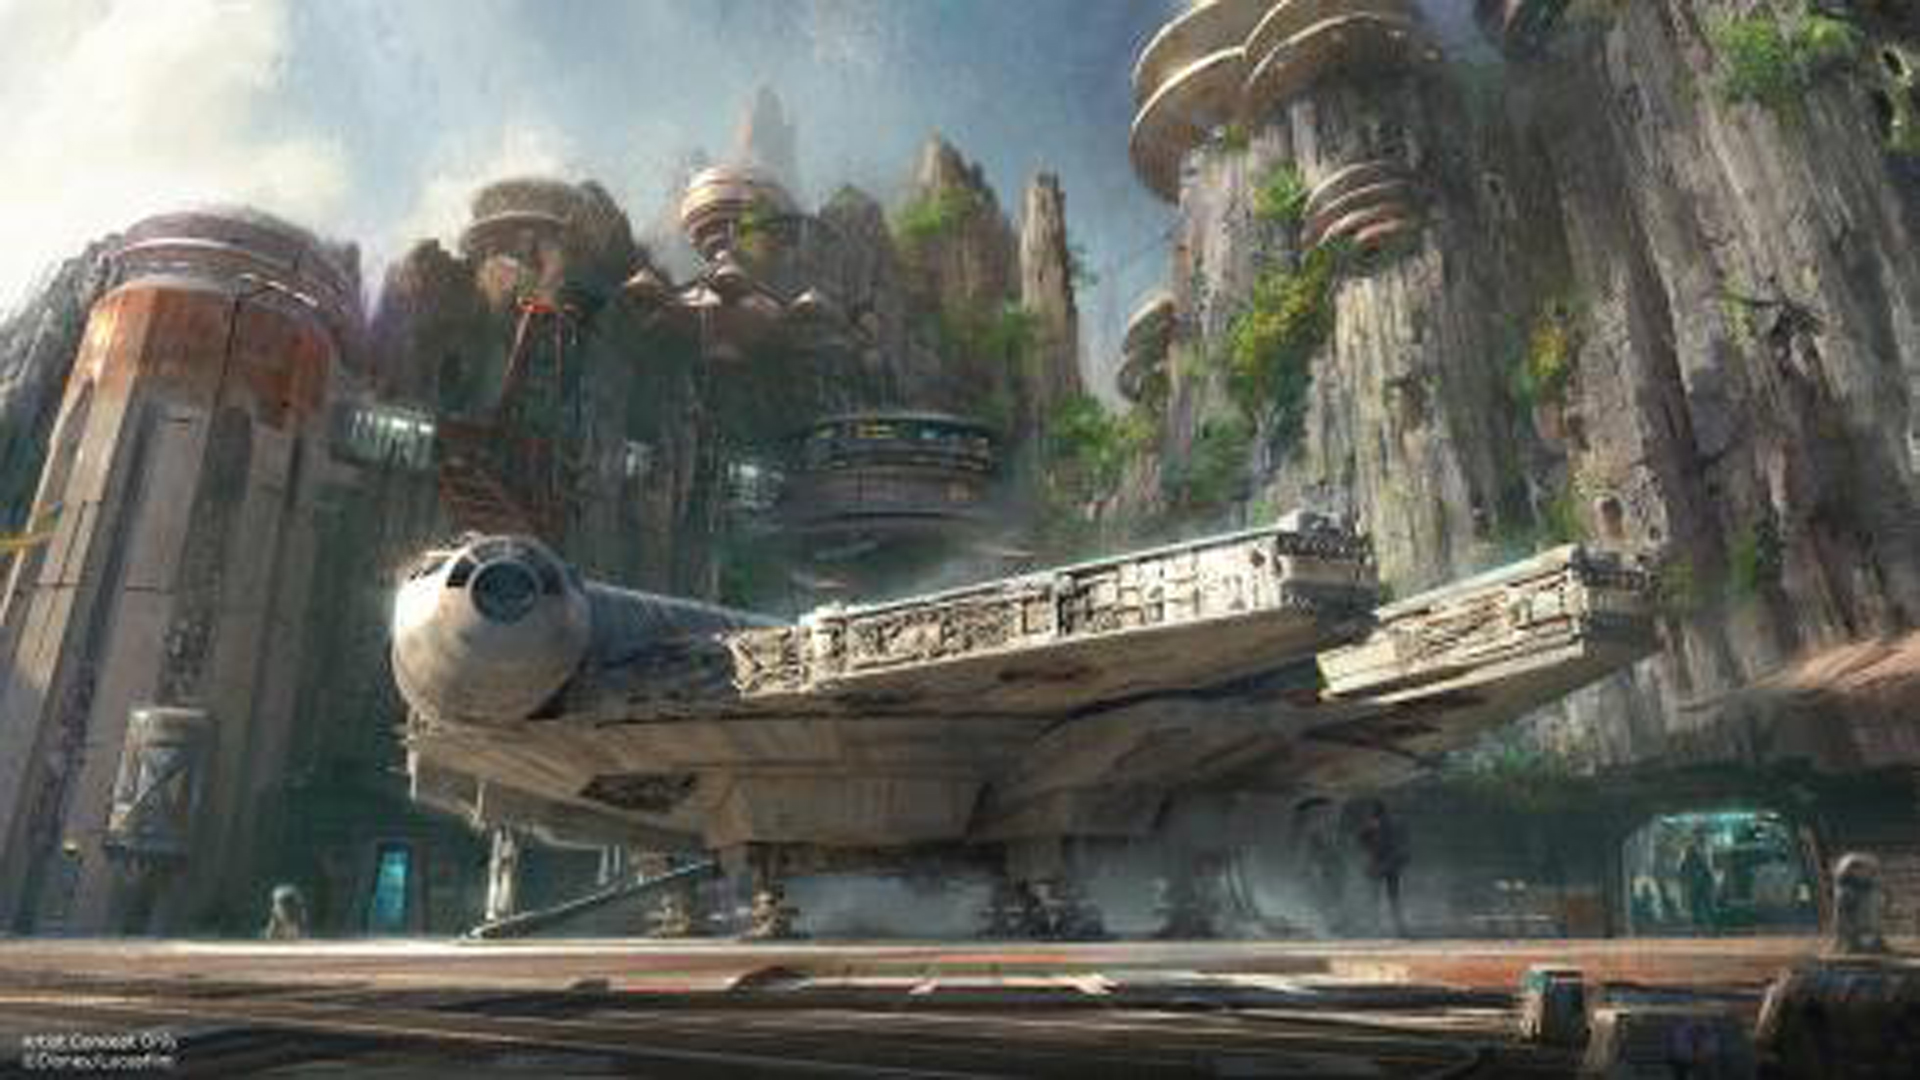 """Disney Parks released this image of the """"Star Wars""""-themed land coming to the company's parks in Orlando, Fla., and Anaheim. (Credit: Disney Parks)"""